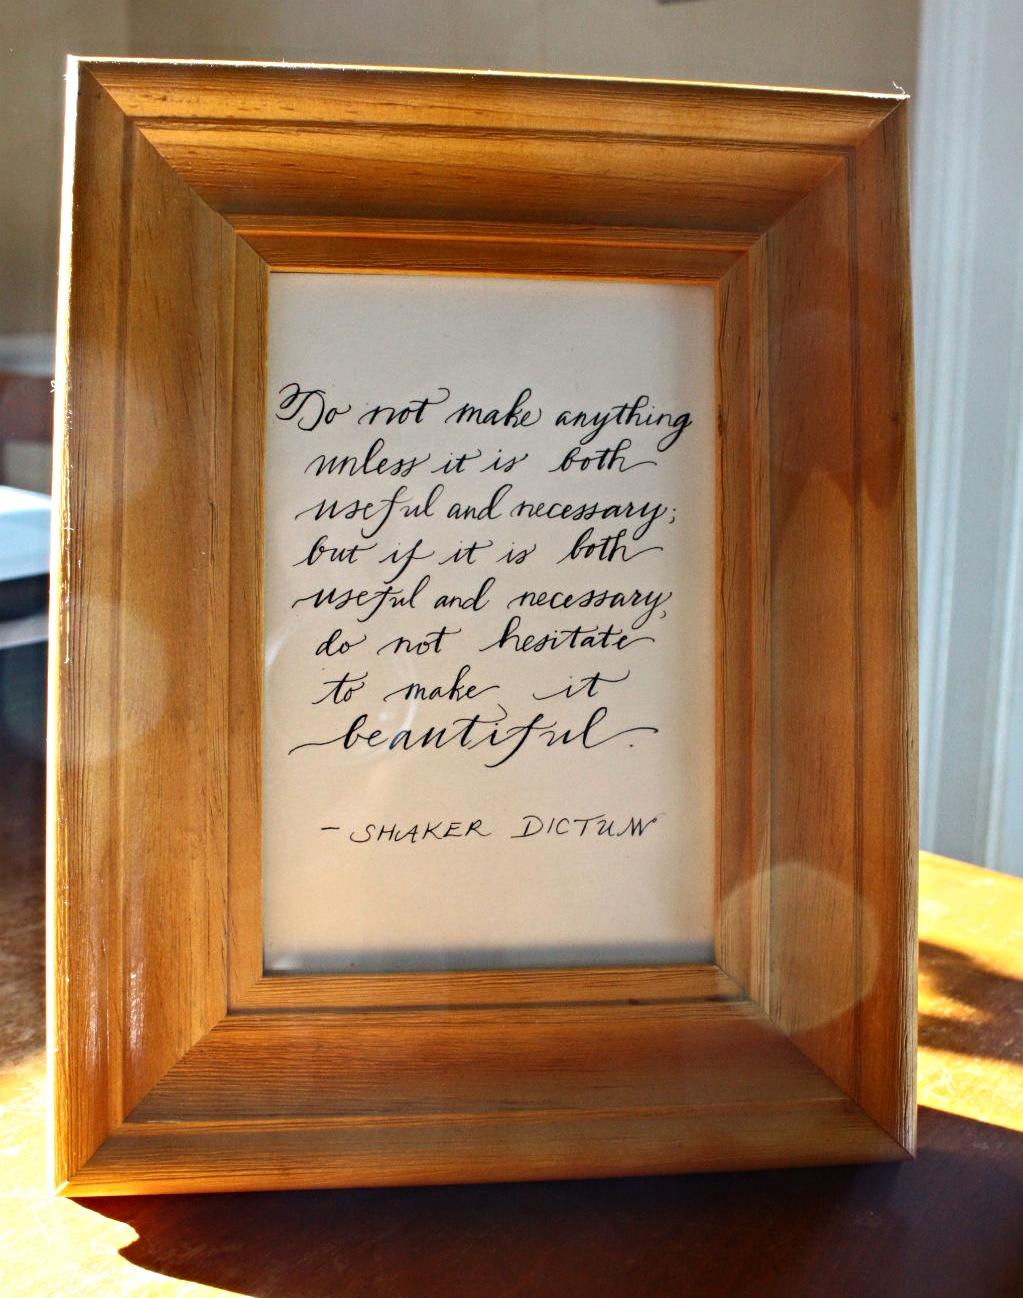 Another view of the Shaker quote.